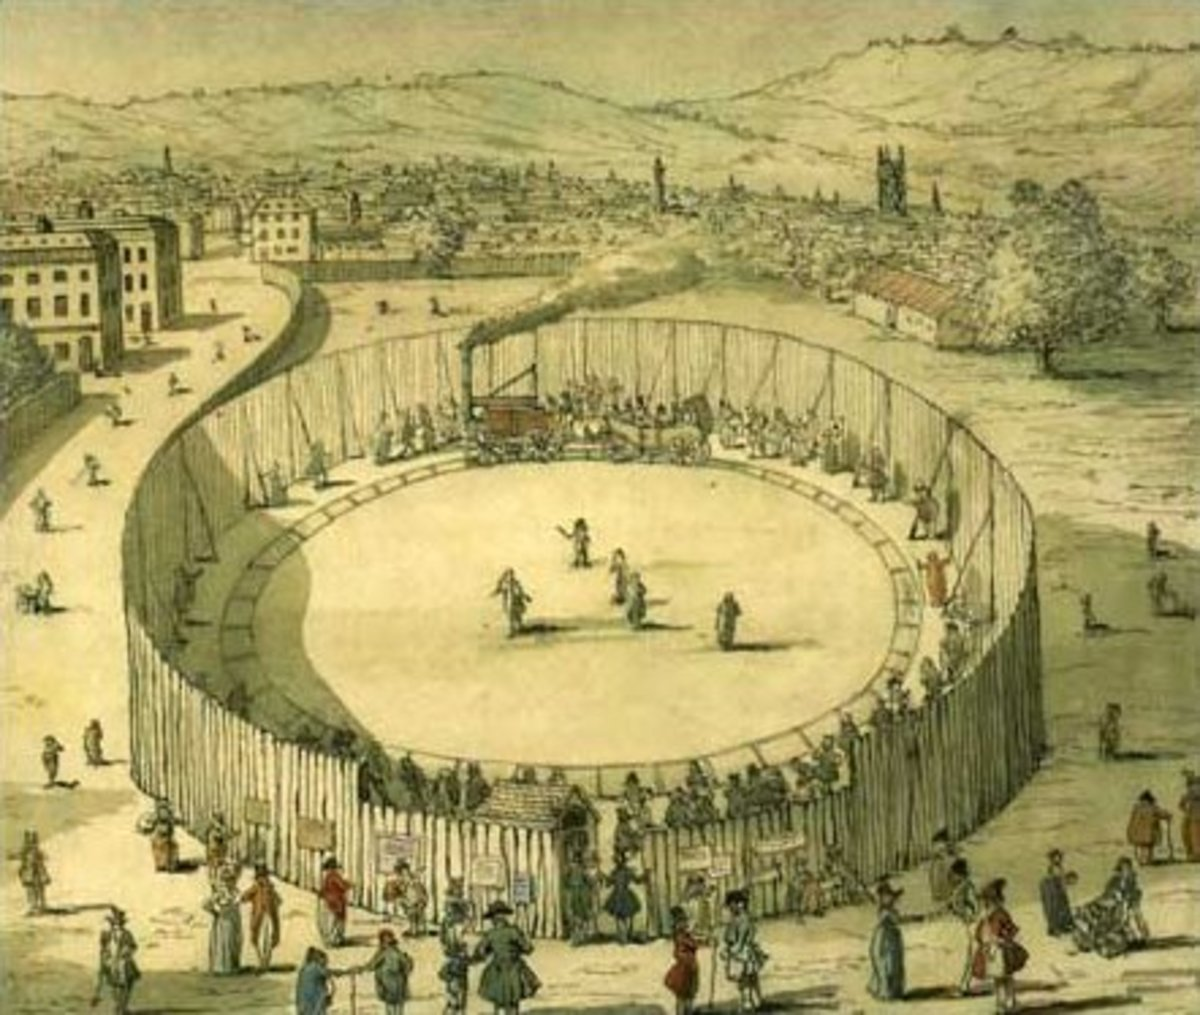 Exhibit: Trevithick's steam circus (public domain).